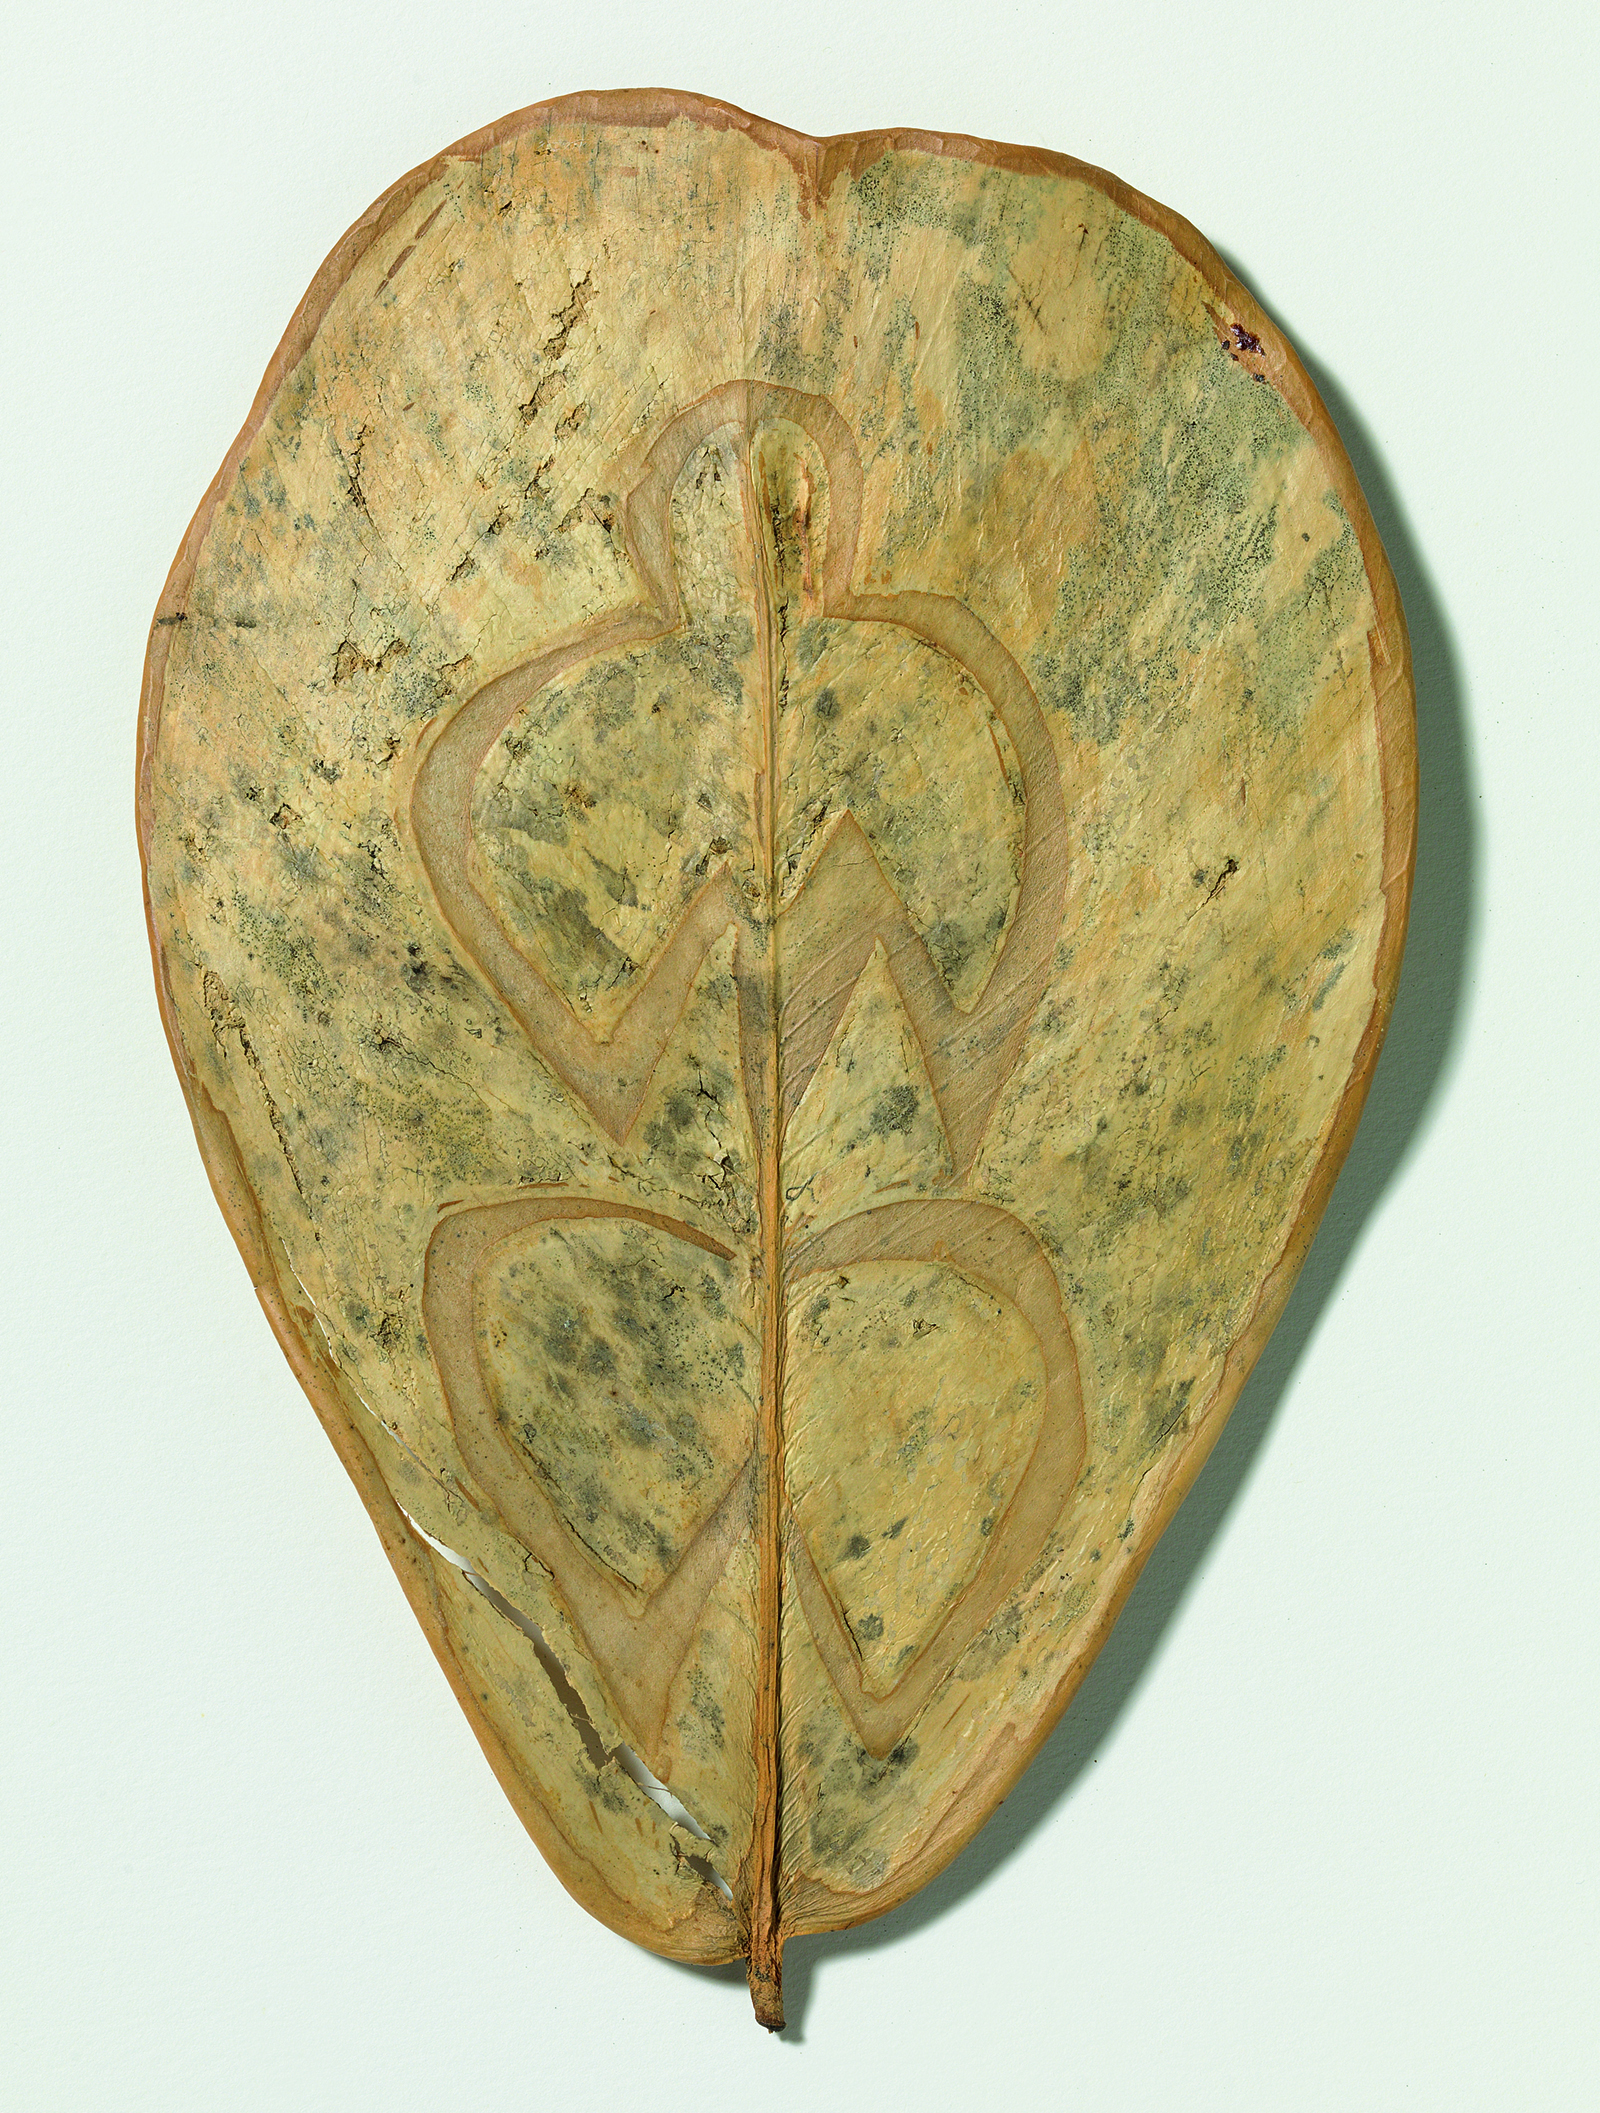 Ana Mendieta, Sense títol (Leaf Drawing)